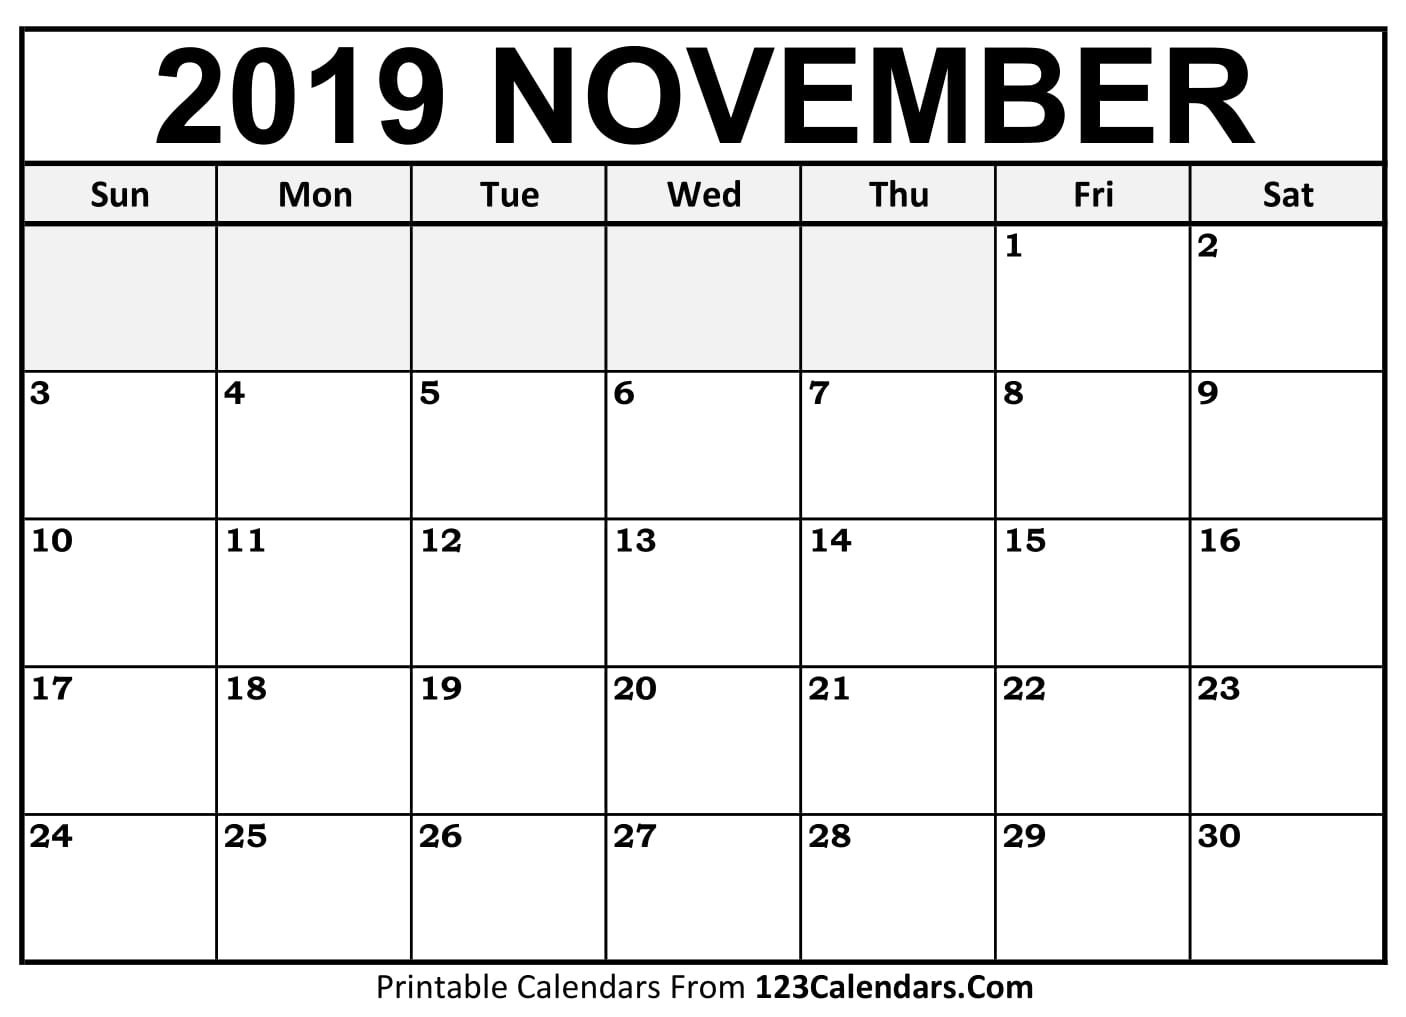 Printable November 2018 Calendar https://www.123calendars.com/images/2018/November/november-2018-calendar-2.jpg